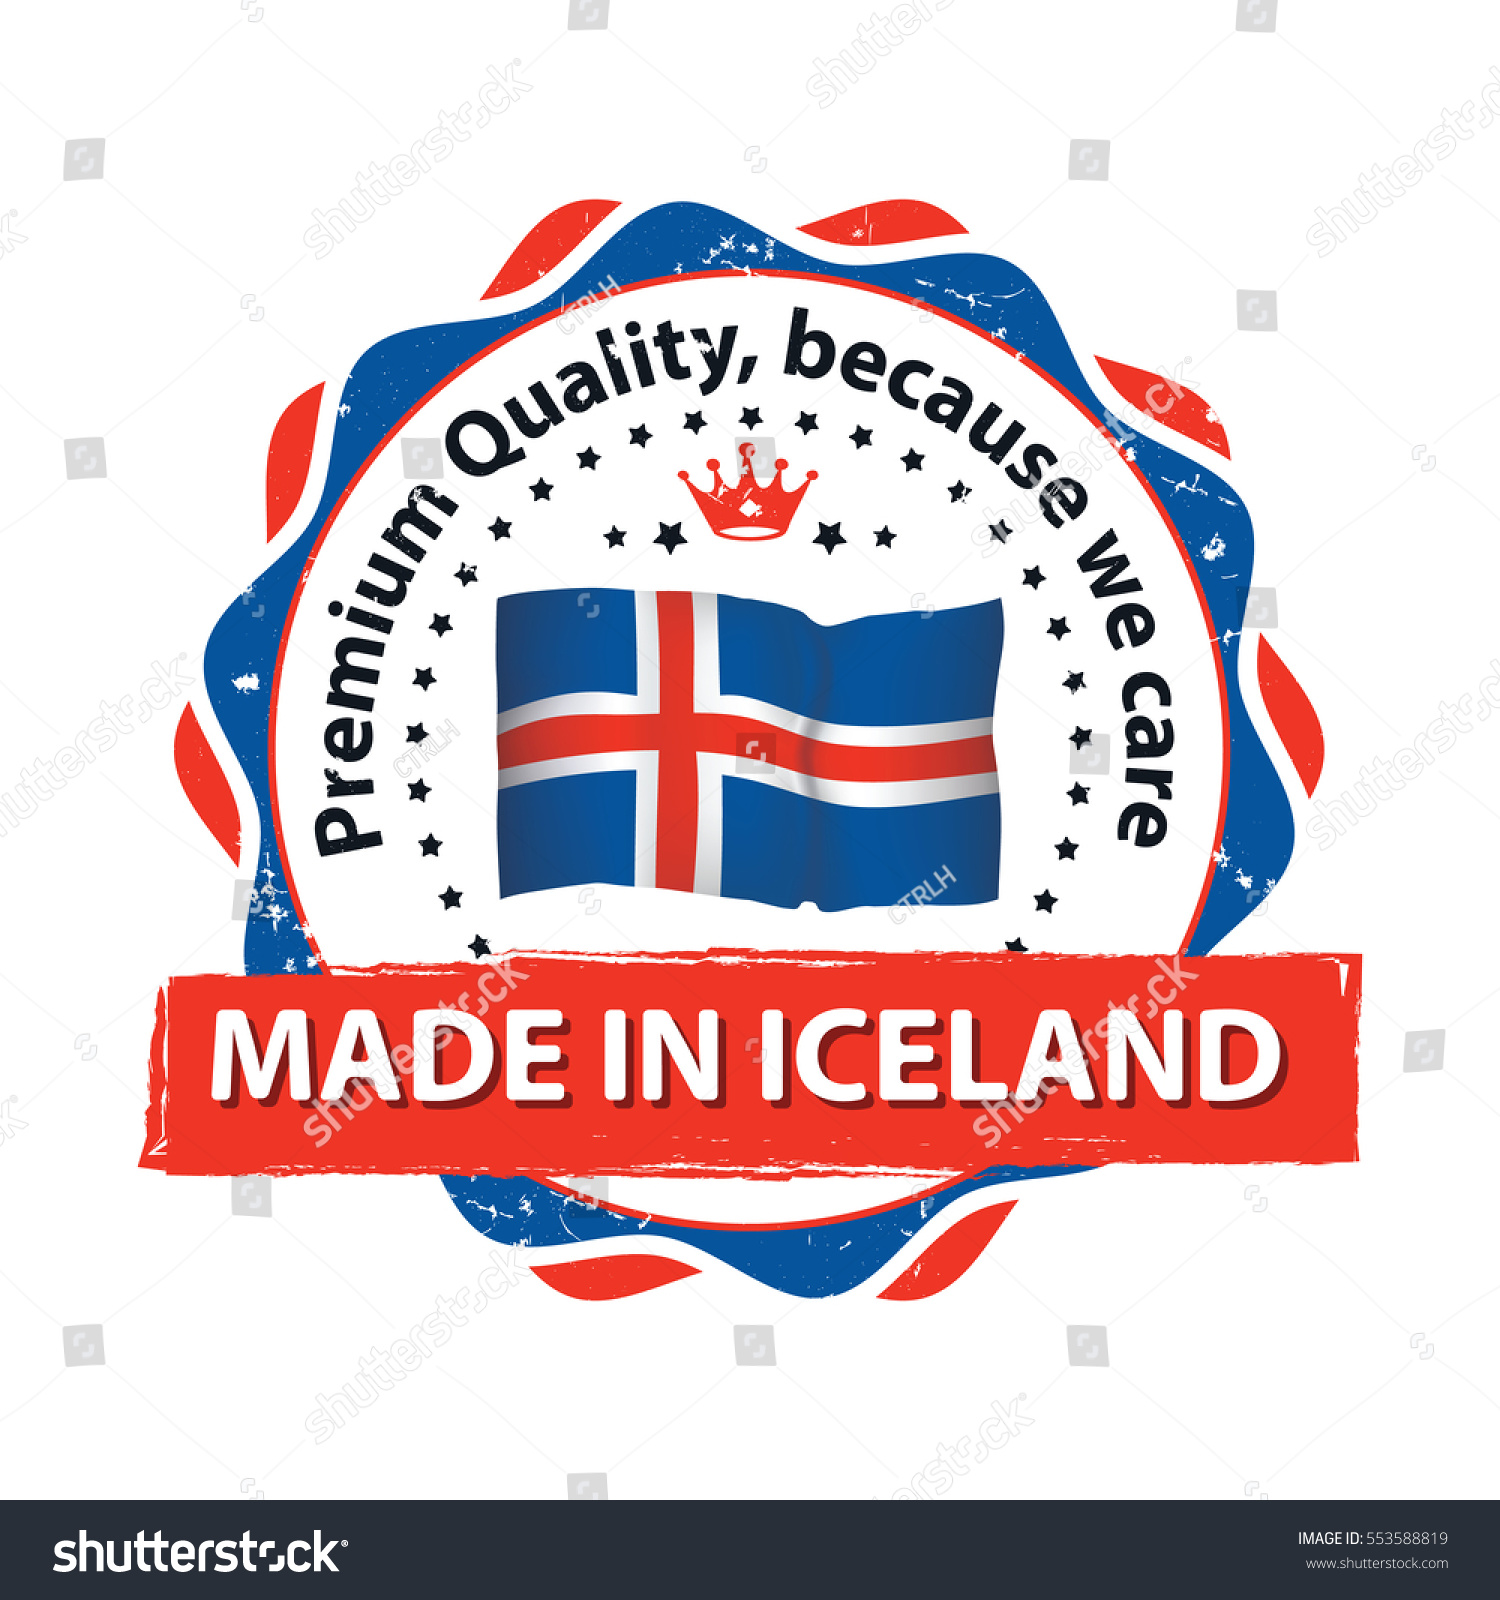 made in iceland premium quality because we care grunge printable stamp label and